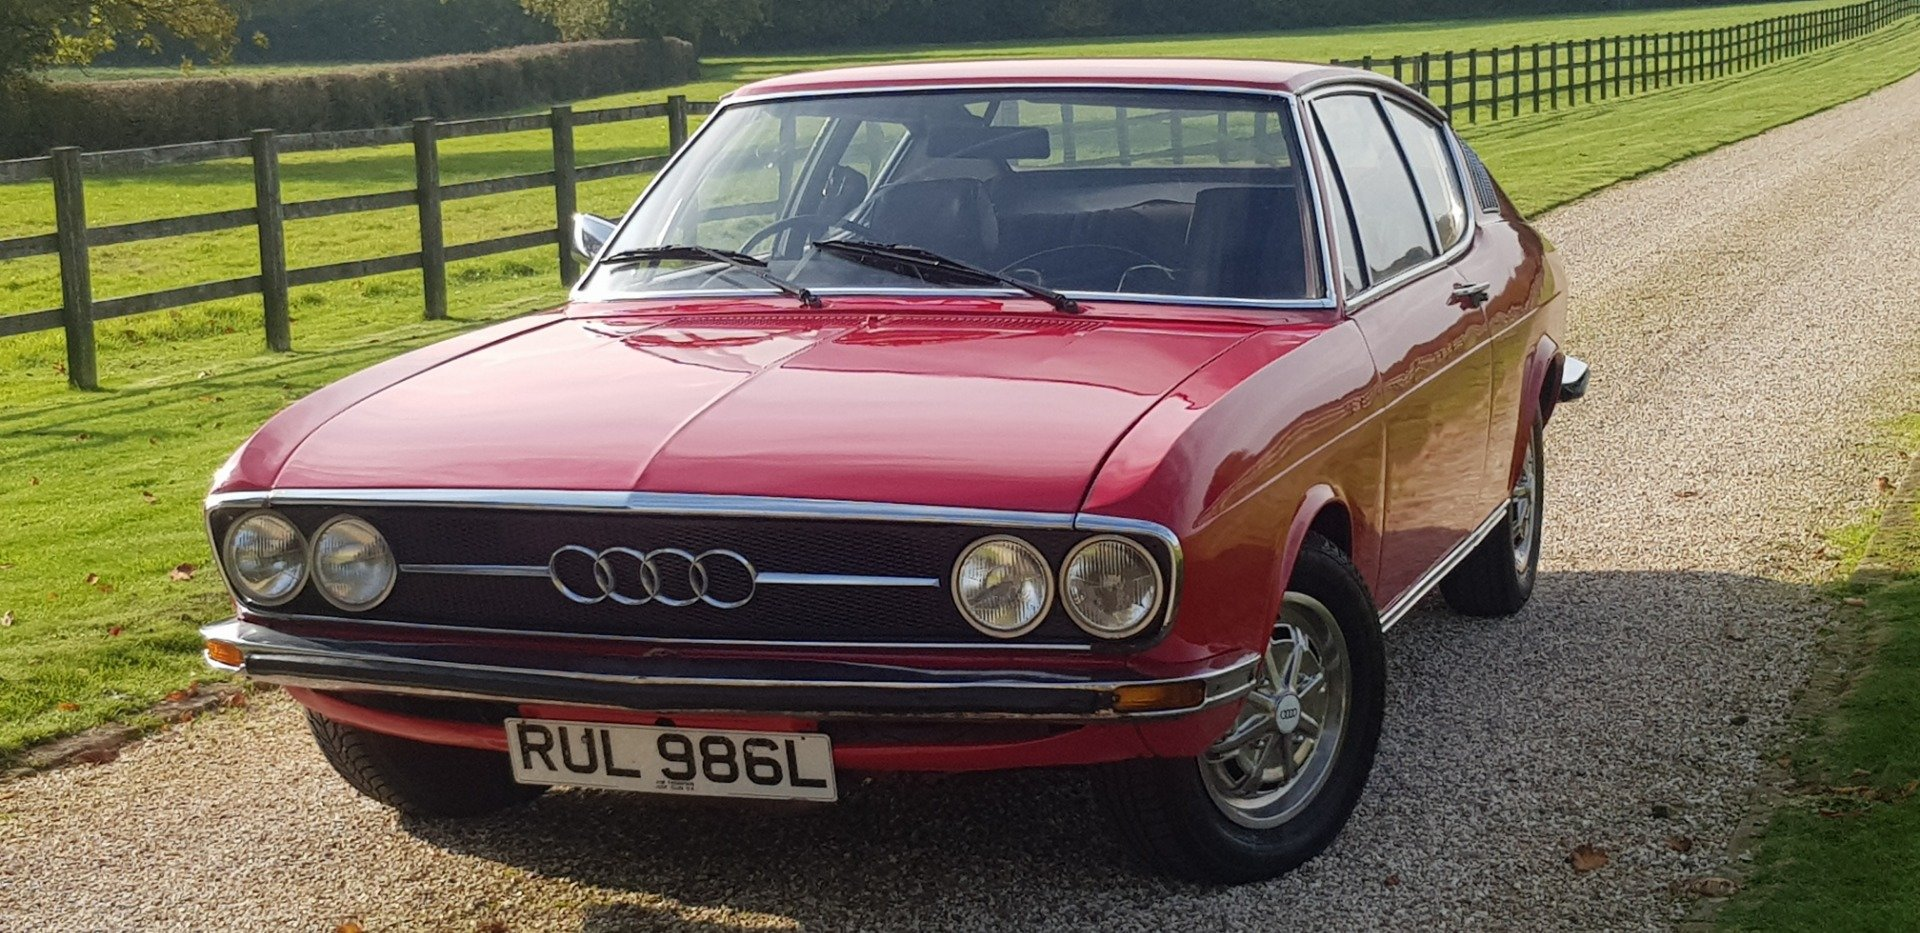 1973 UK RHD  COUPE 100S  VERY  RARE  VEHICLE   For Sale (picture 2 of 6)